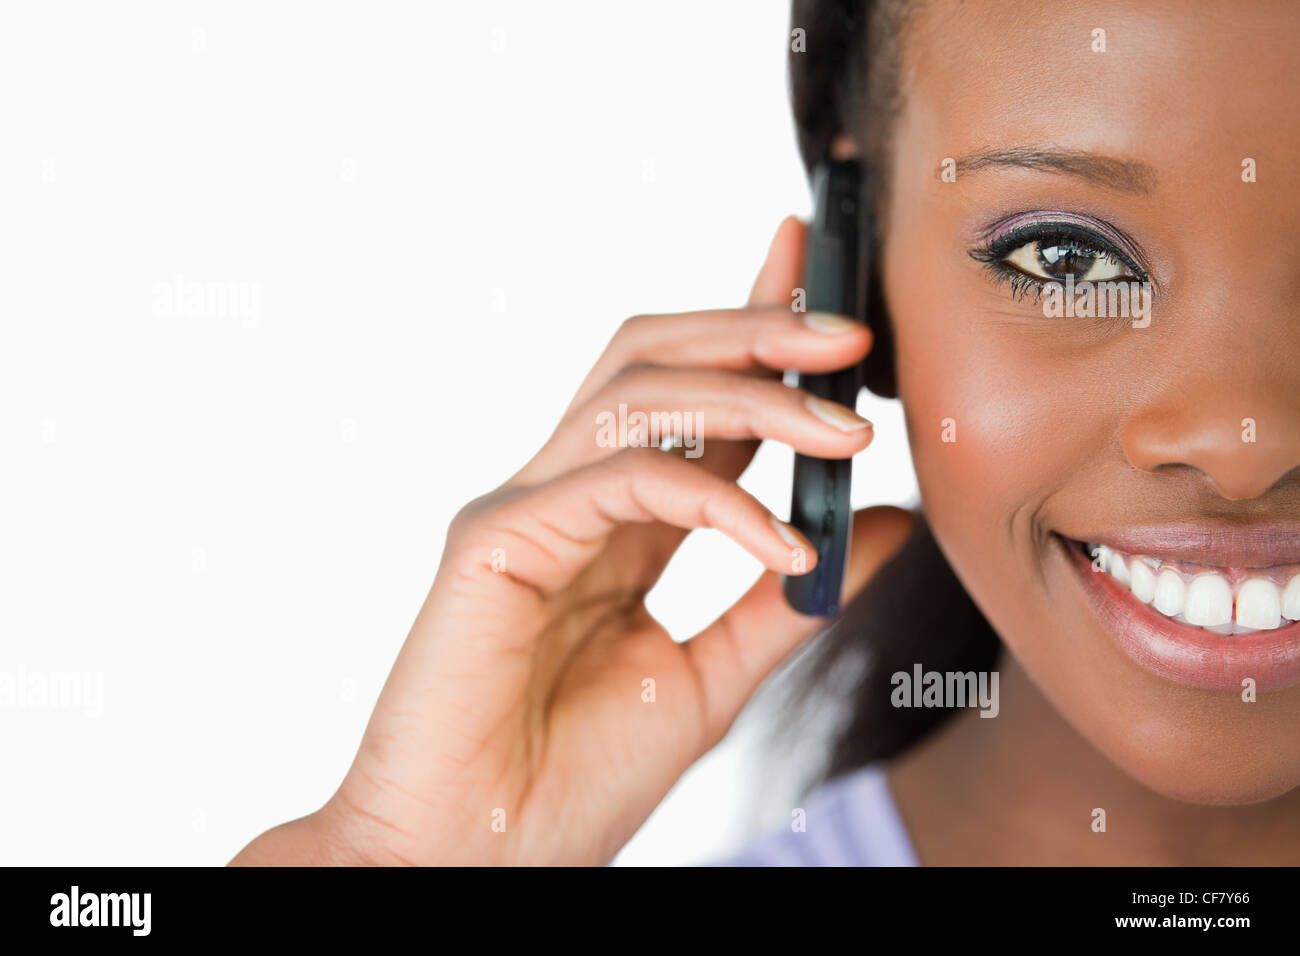 Close up of woman on her phone against a white background Stock Photo